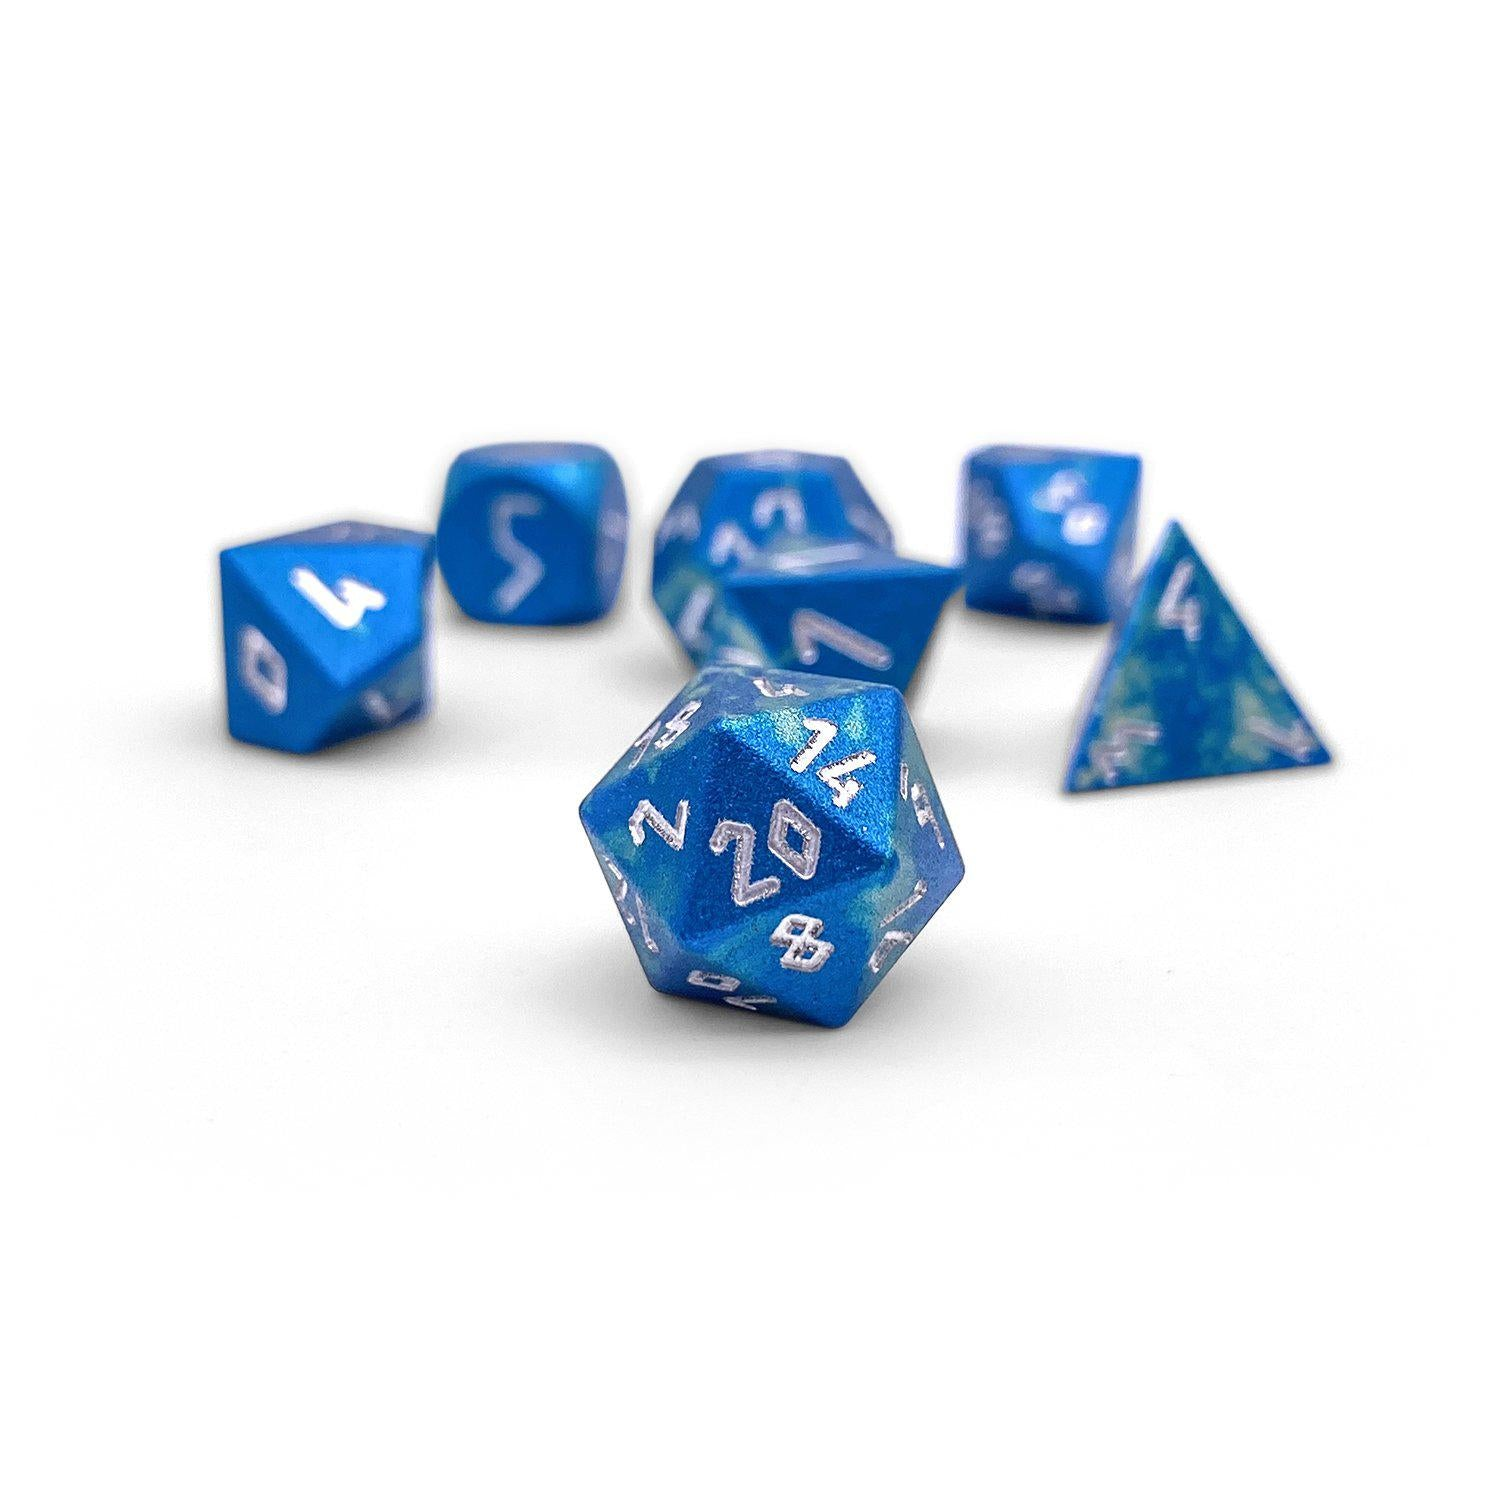 Bullywug Wondrous Pebble ™ Dice - 10mm 6063 Aircraft Grade Aluminum Mini